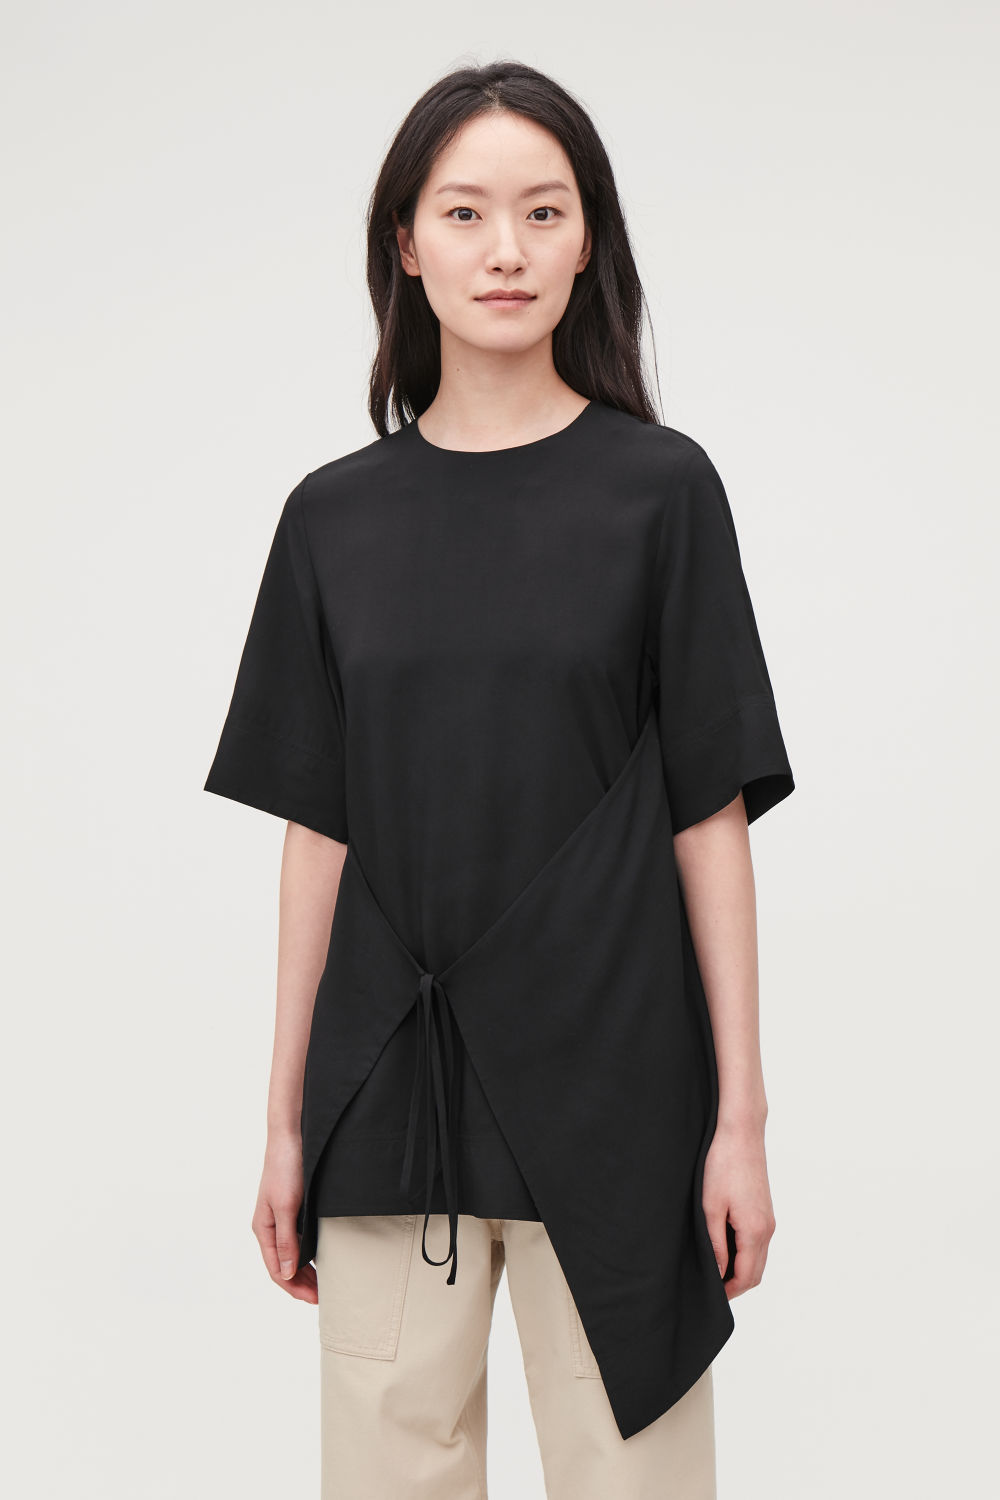 ASYMMETRIC-PANEL TOP